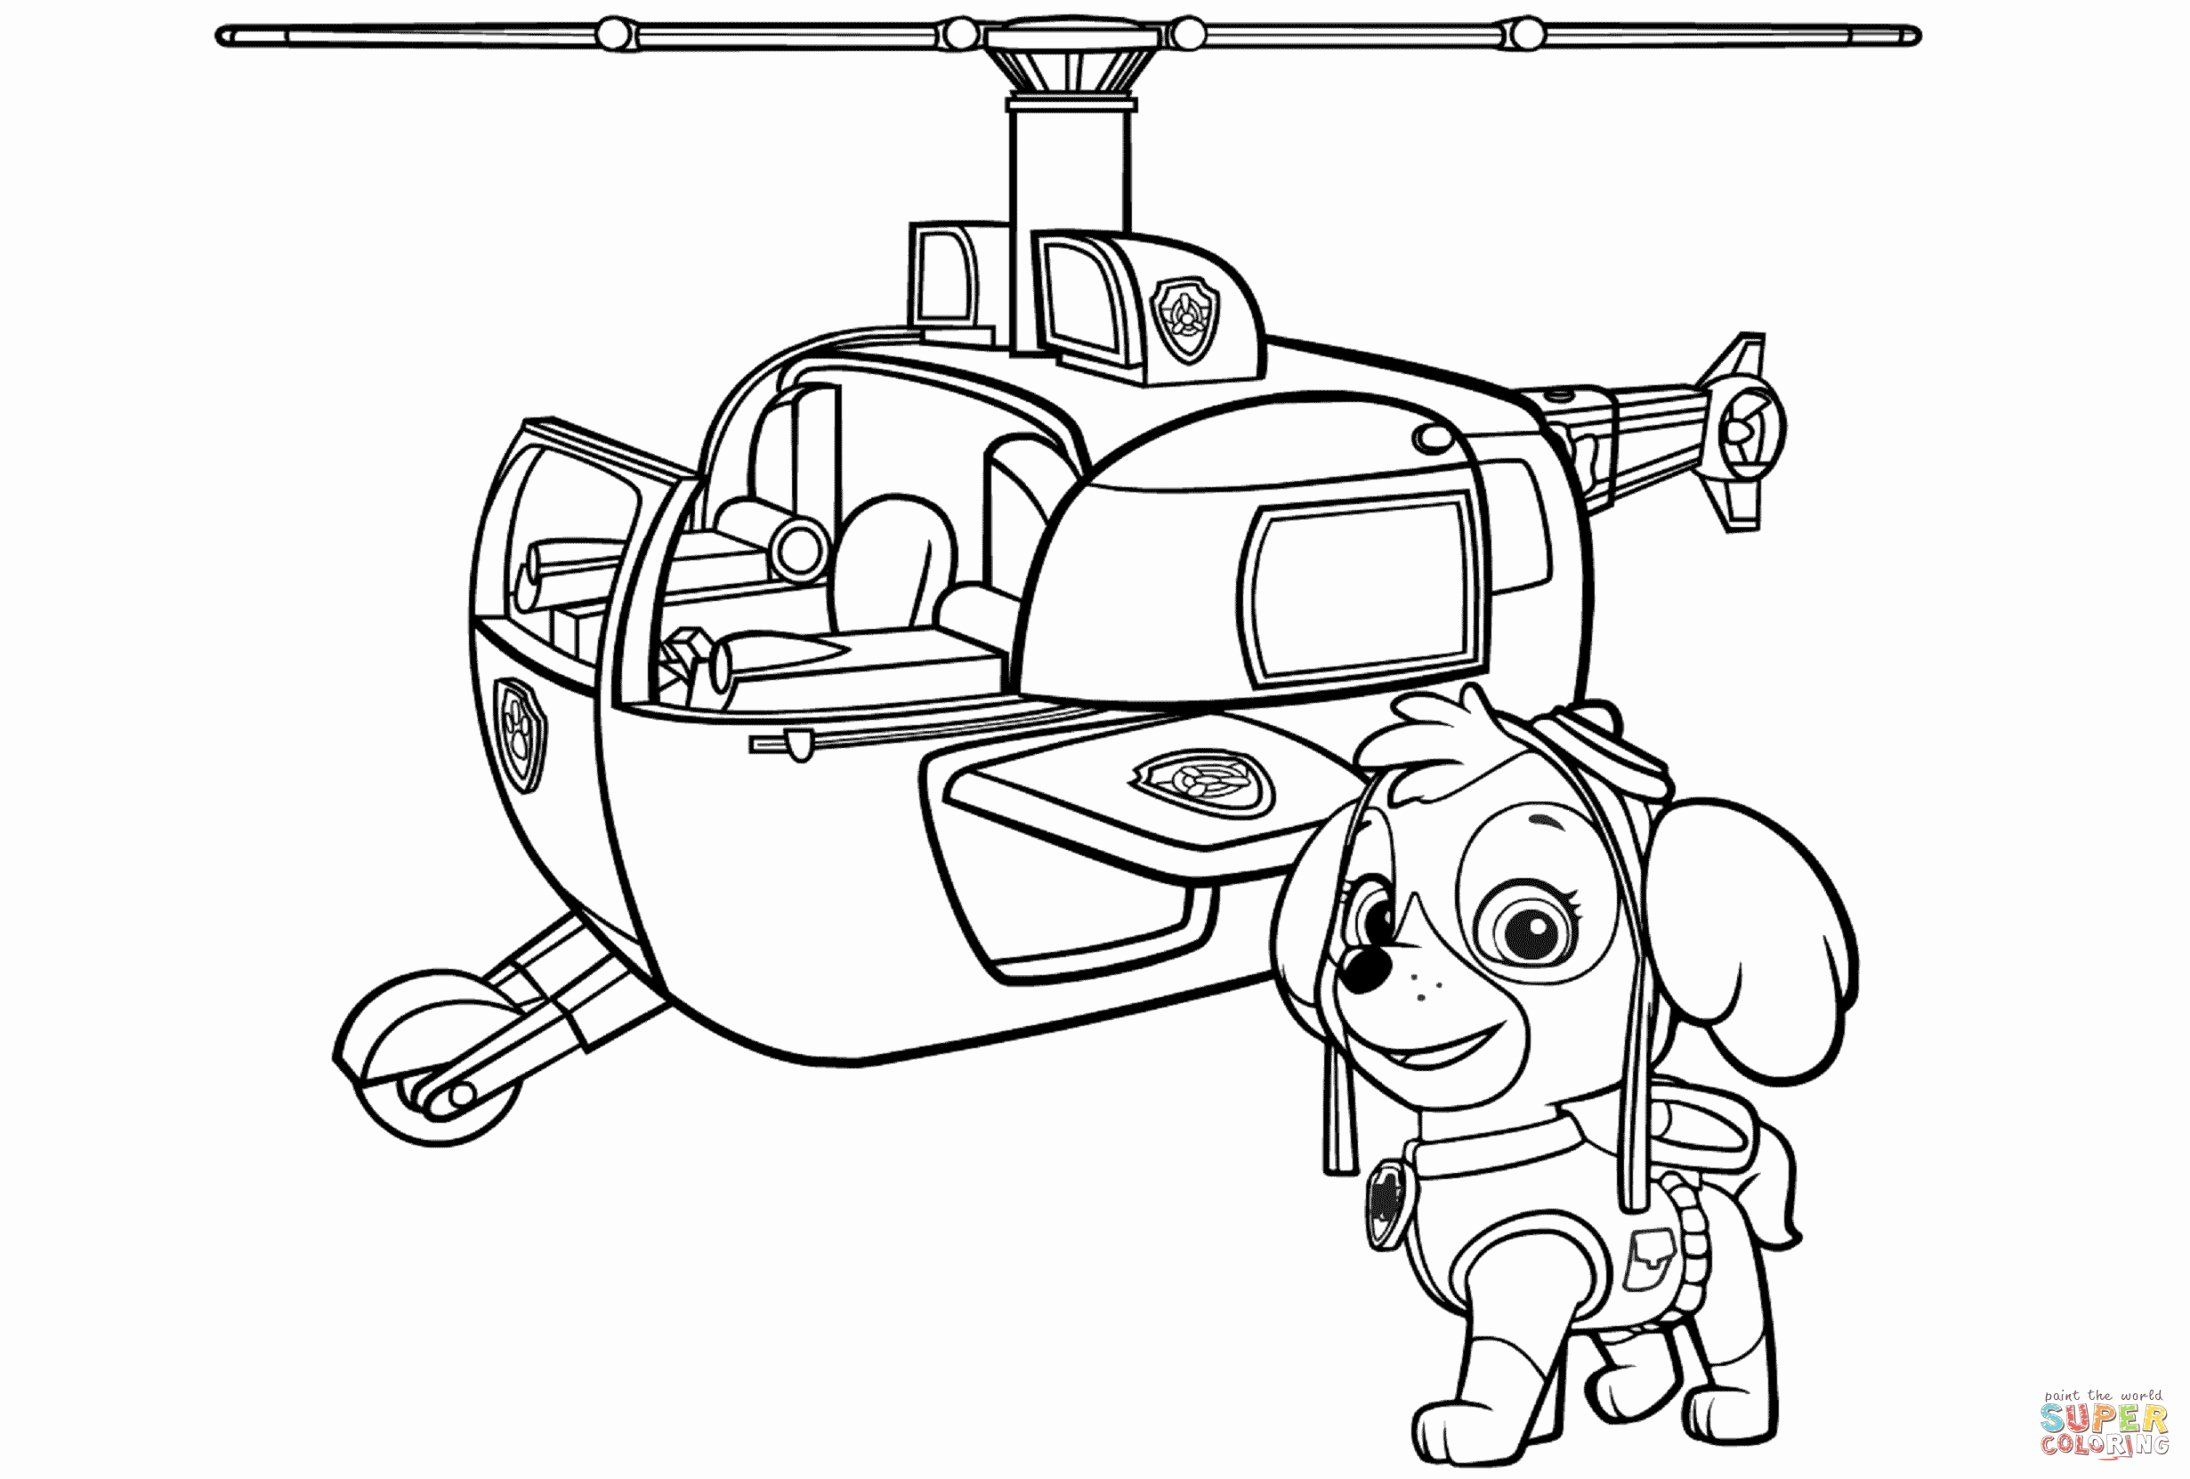 Baby Alive Coloring Page Lovely Printable Coloring Pages For Kids Paw Patrol Coloring Sheets [ 1479 x 2190 Pixel ]